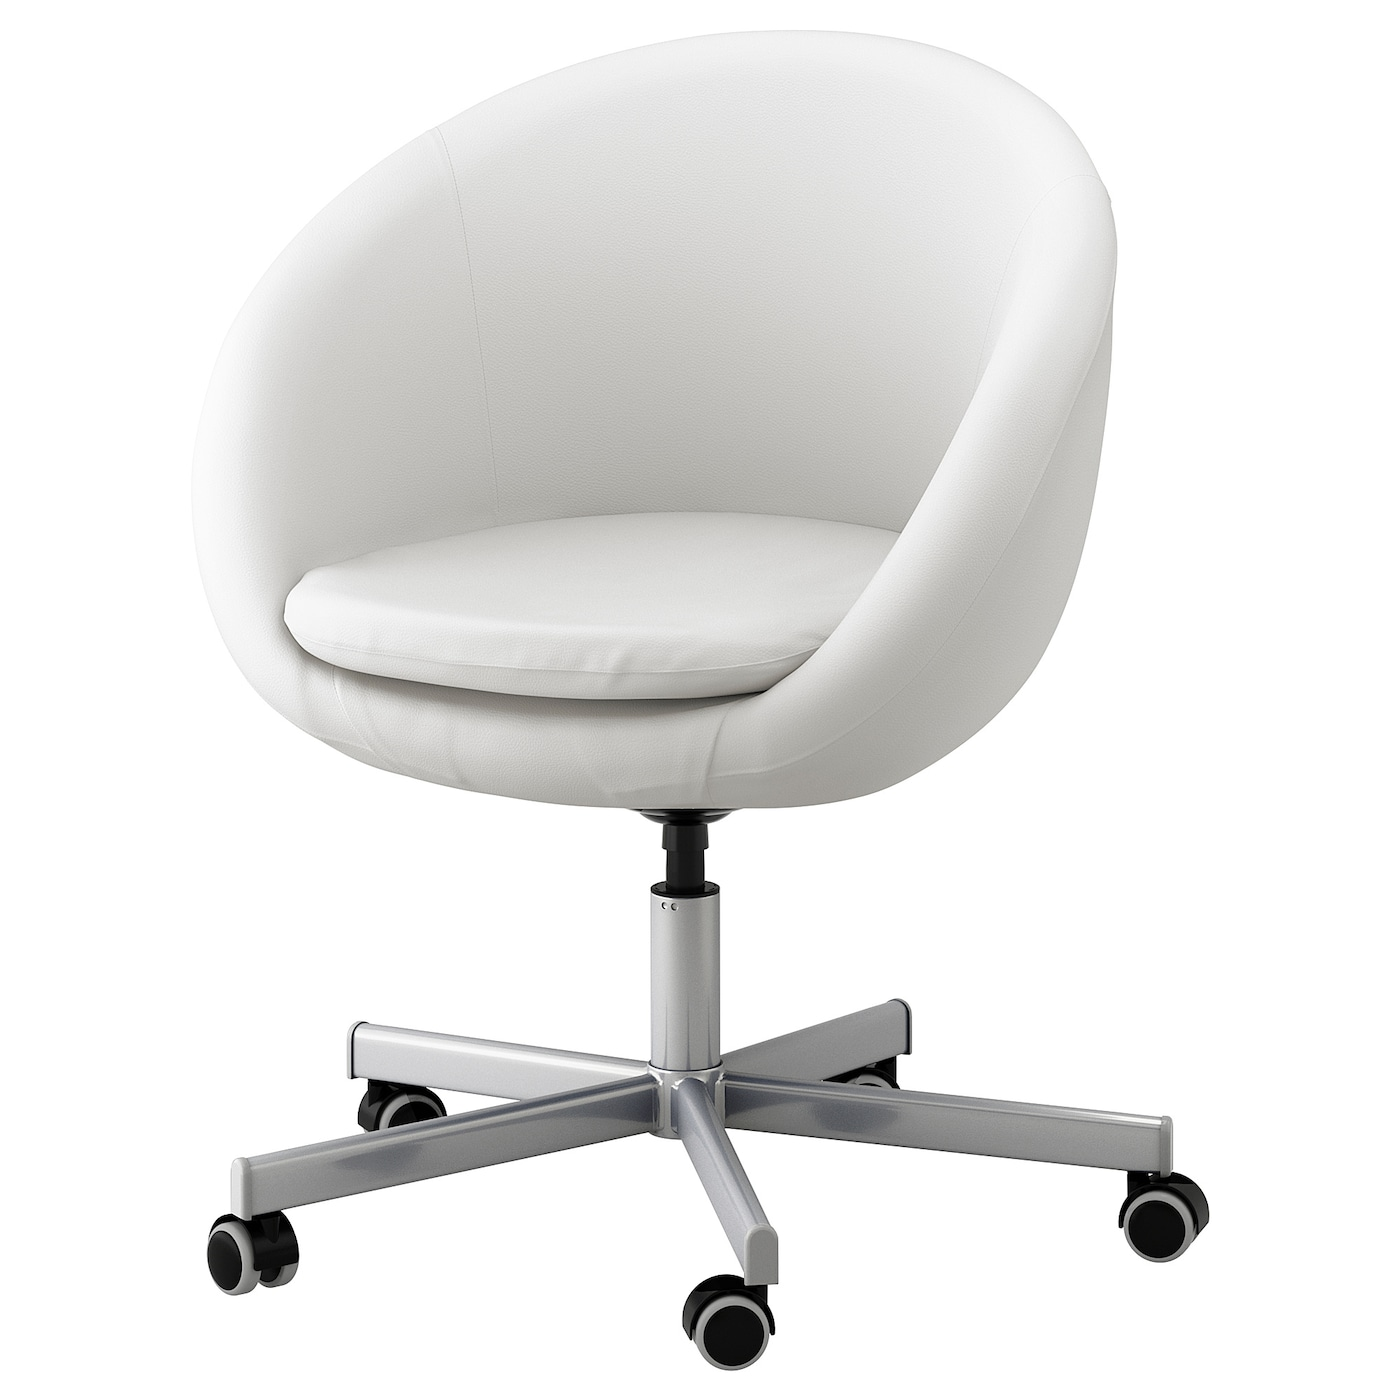 ikea office chairs canada. ikea skruvsta swivel chair you sit comfortably since the is adjustable in height. ikea office chairs canada